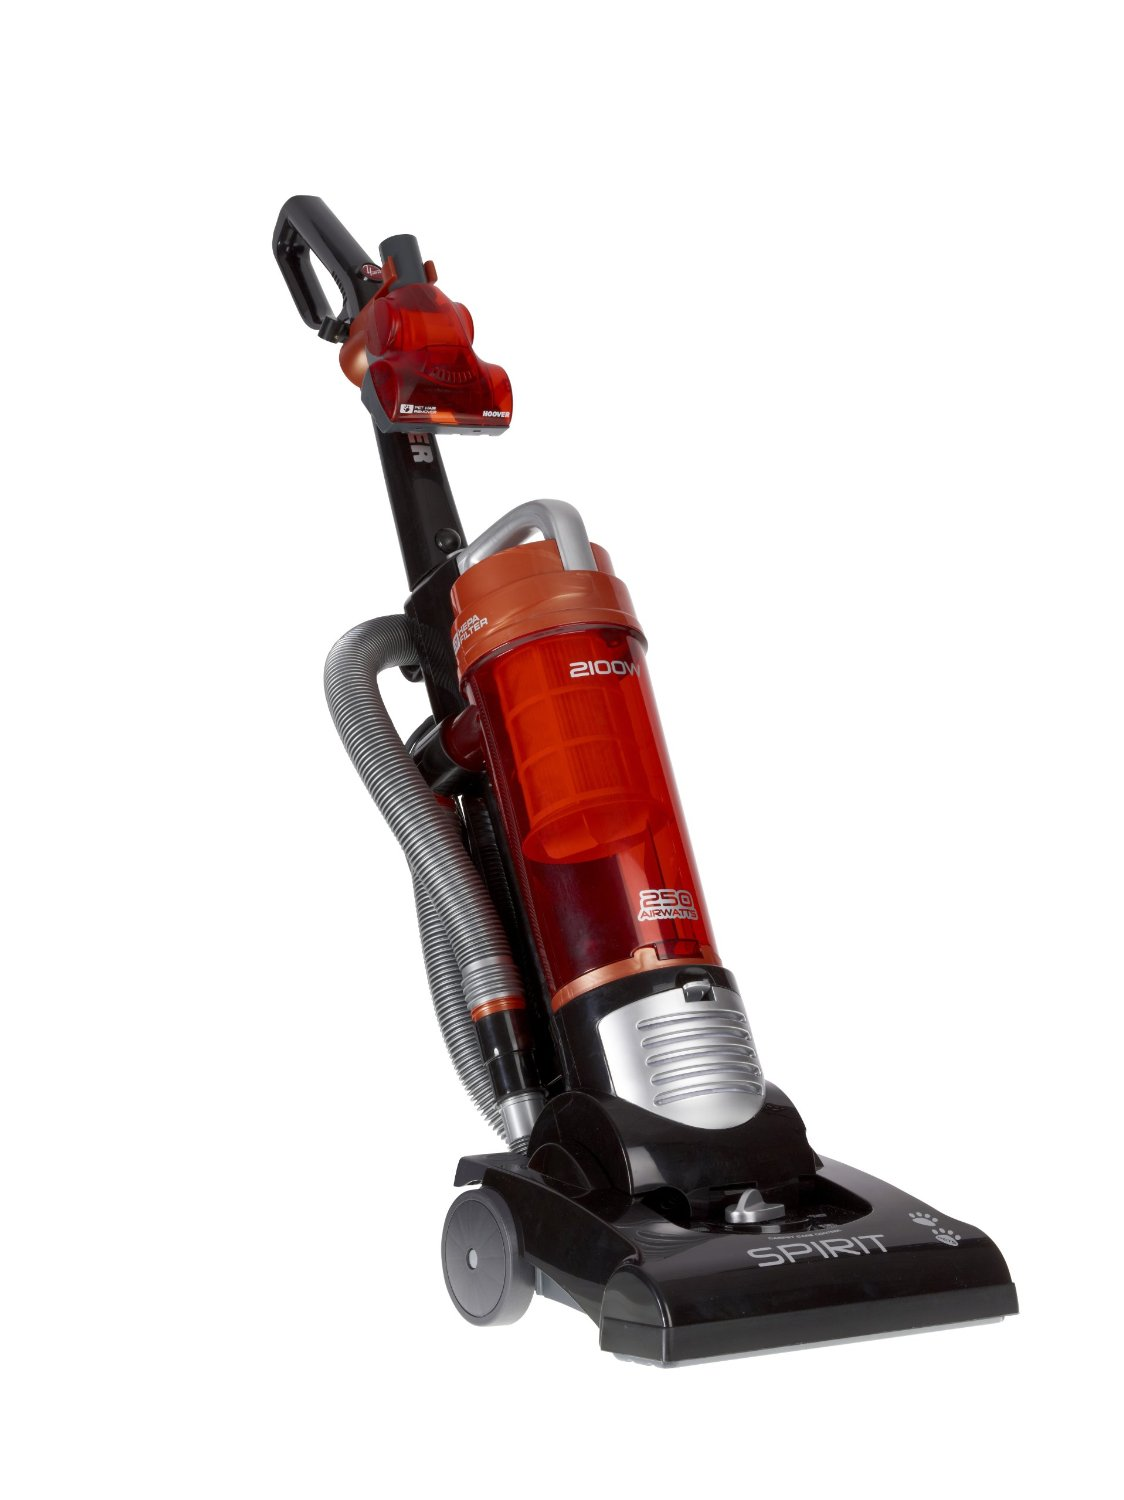 Hoover sp2102 spirit pets 2100w bagless upright vacuum cleaner hepa filter enlarged preview - Choosing a vacuum cleaner ...